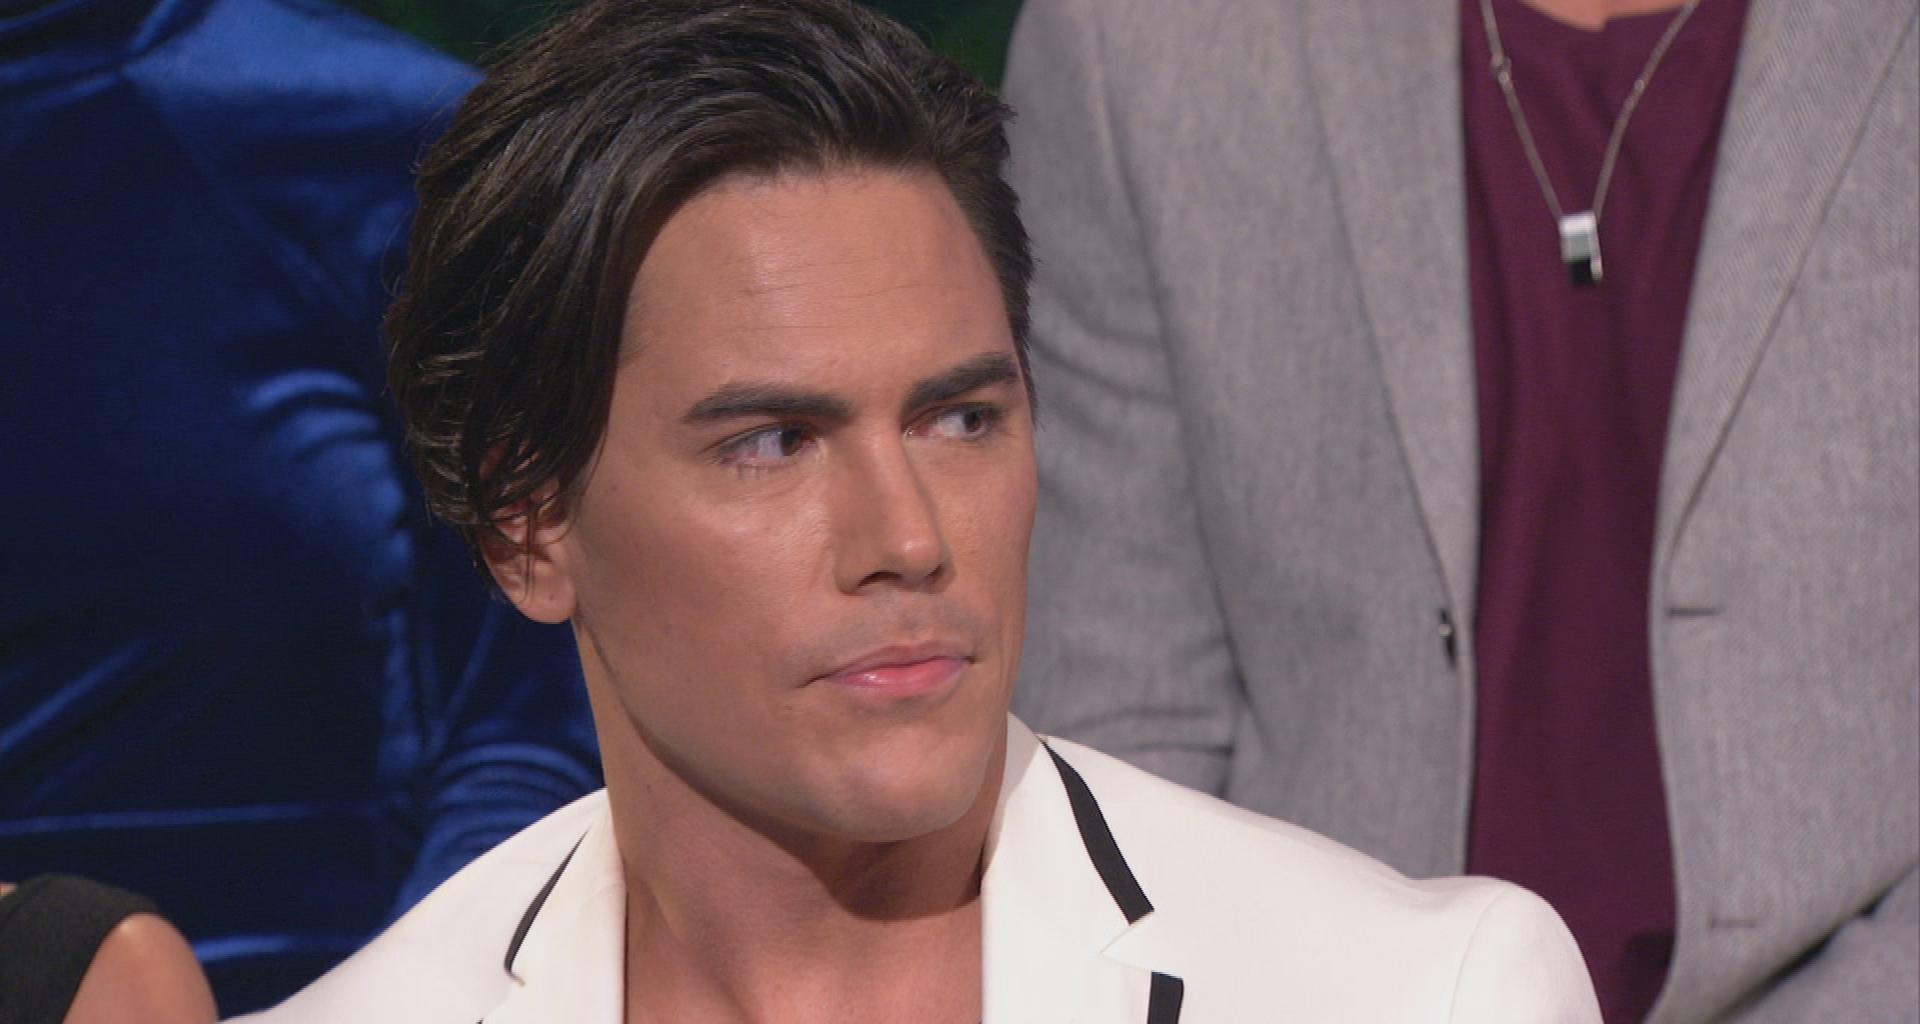 """'Vanderpump Rules' Star Tom Sandoval Reflects On His Time In The Modeling Industry: """"I Dealt With So Much Harassment And Creepiness"""""""